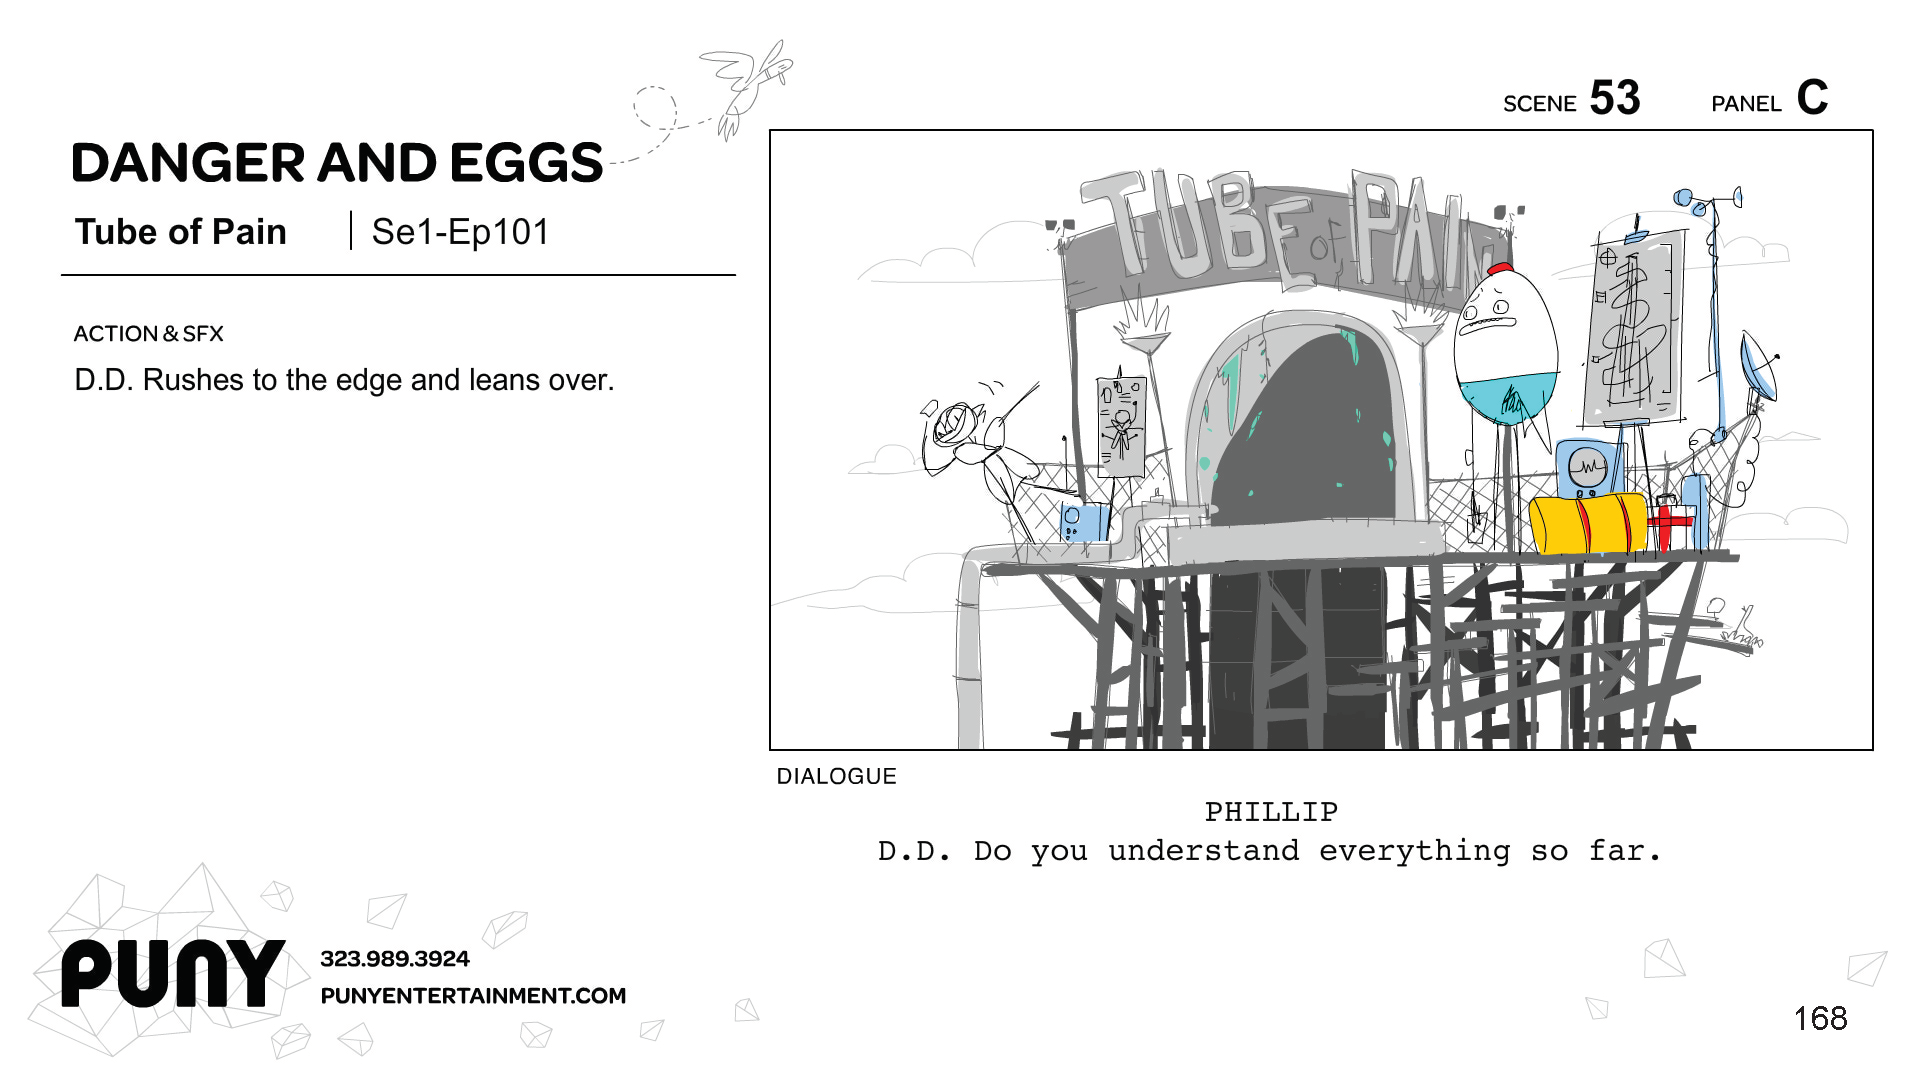 MikeOwens_STORYBOARDS_DangerAndEggs_Page_168.png